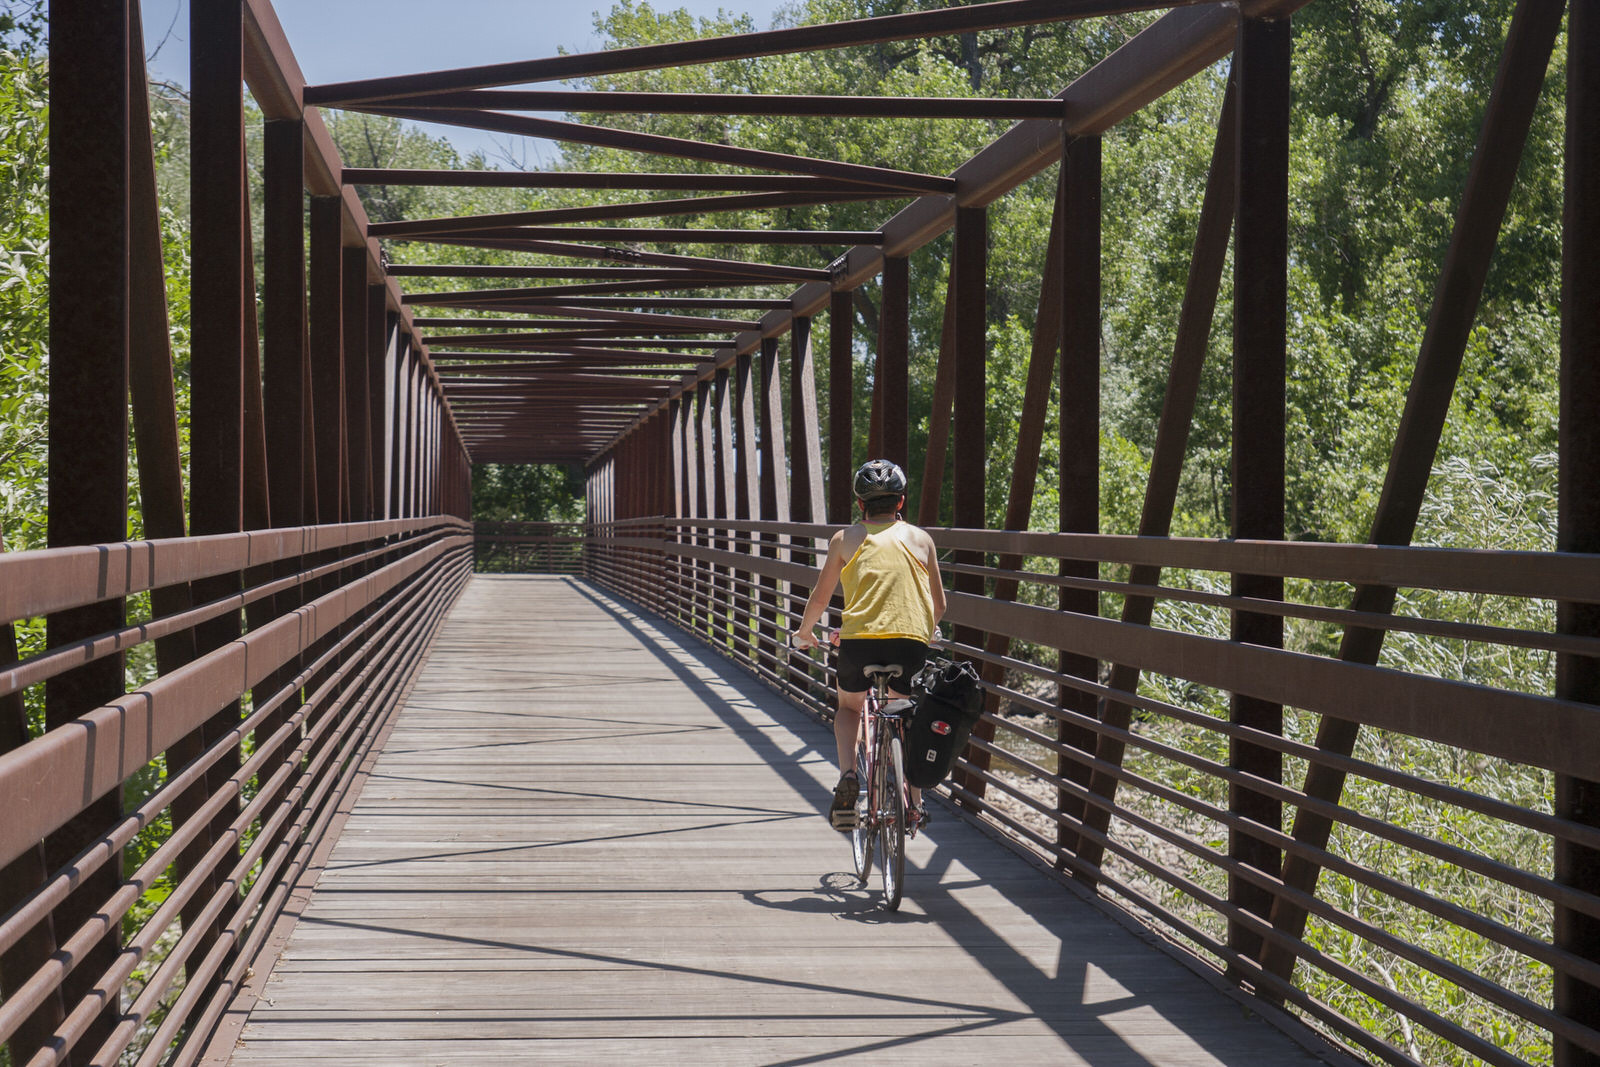 photo: The Poudre Trail has many miles of paved trails and sturdy bridges to ride your bike on along the Cache la Poudre River. Photo by Gabriele Woolever.